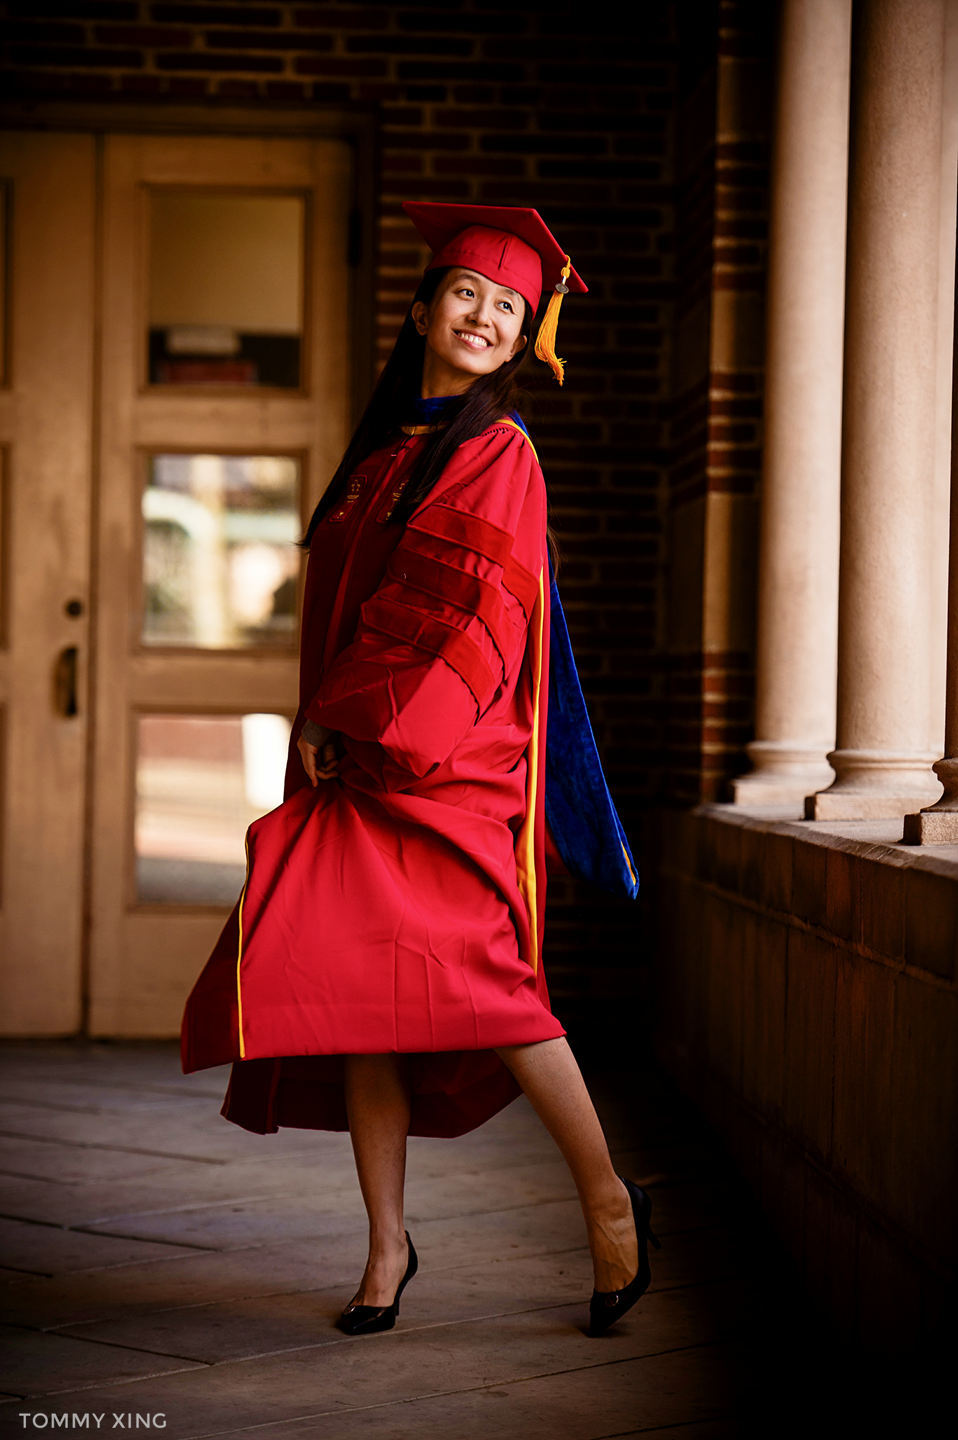 Graduation portrait photography - USC - Los Angeles - Tommy Xing Photography 02.jpg